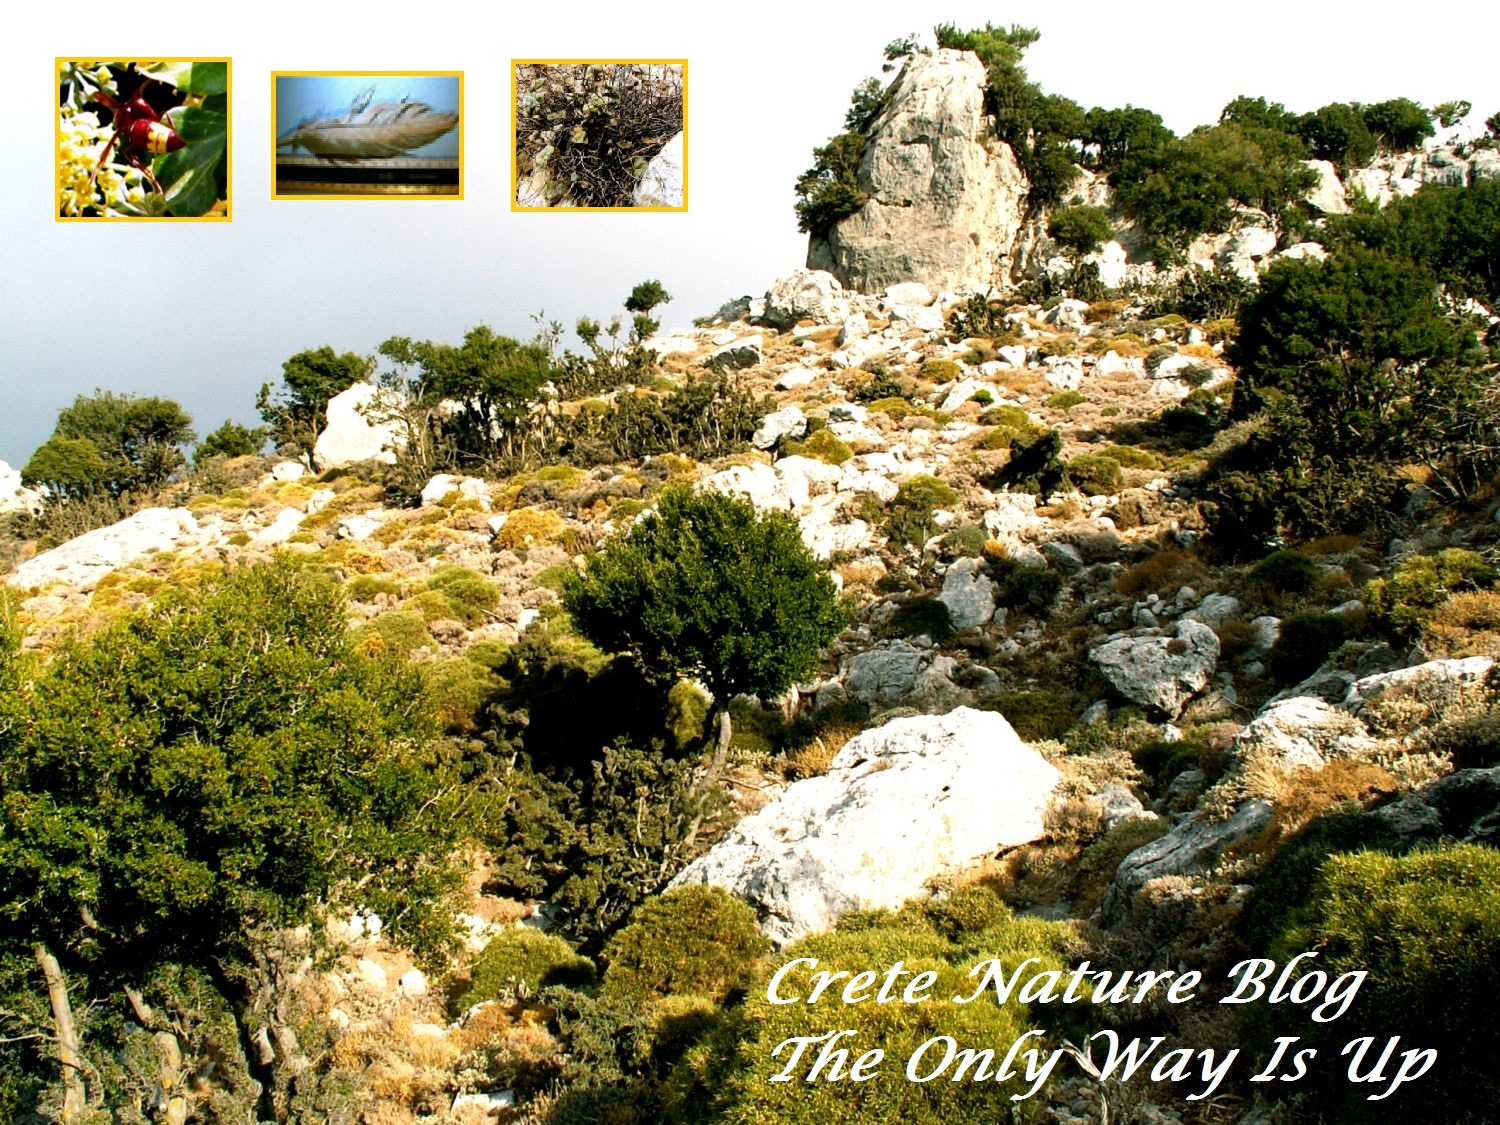 Crete Nature Blog: The Only way is Up by stevessummerbook